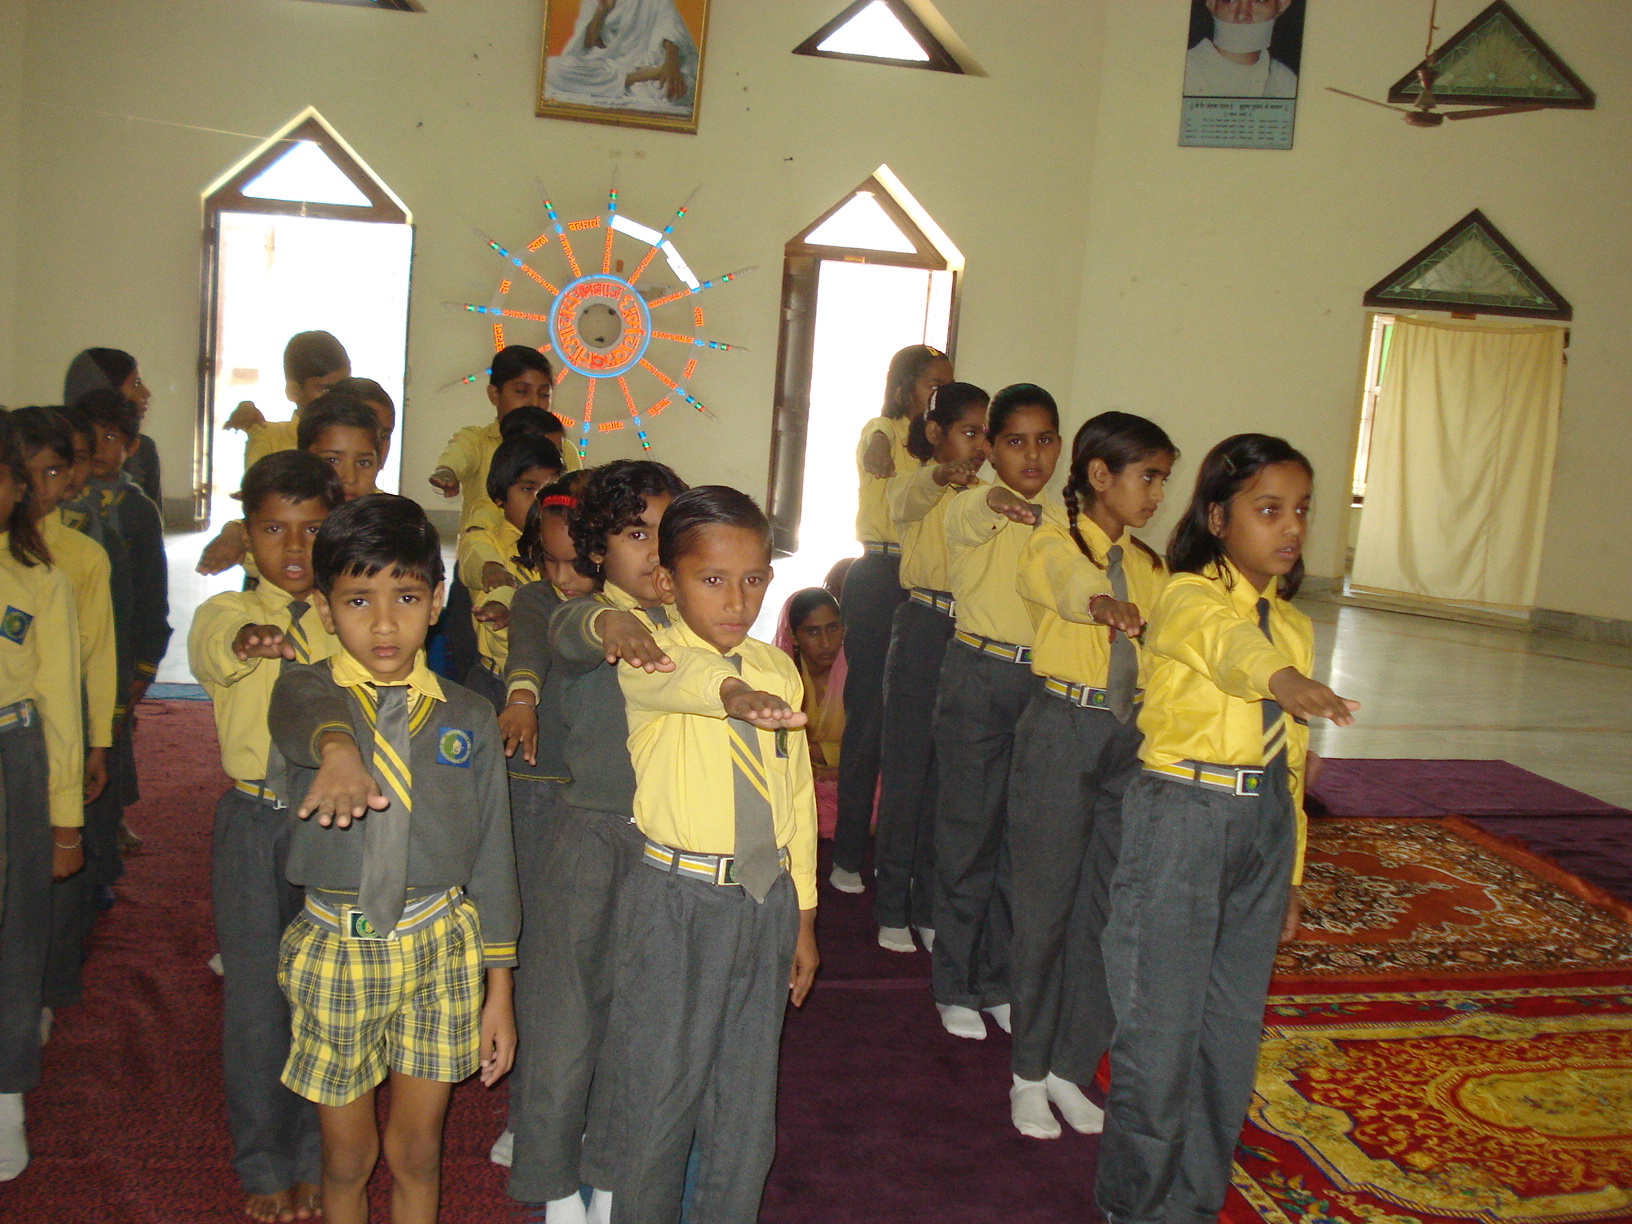 http://www.herenow4u.net/fileadmin/v3media/pics/organisations/Mahapragya_International_School/Anuvrat_Pledge.jpg